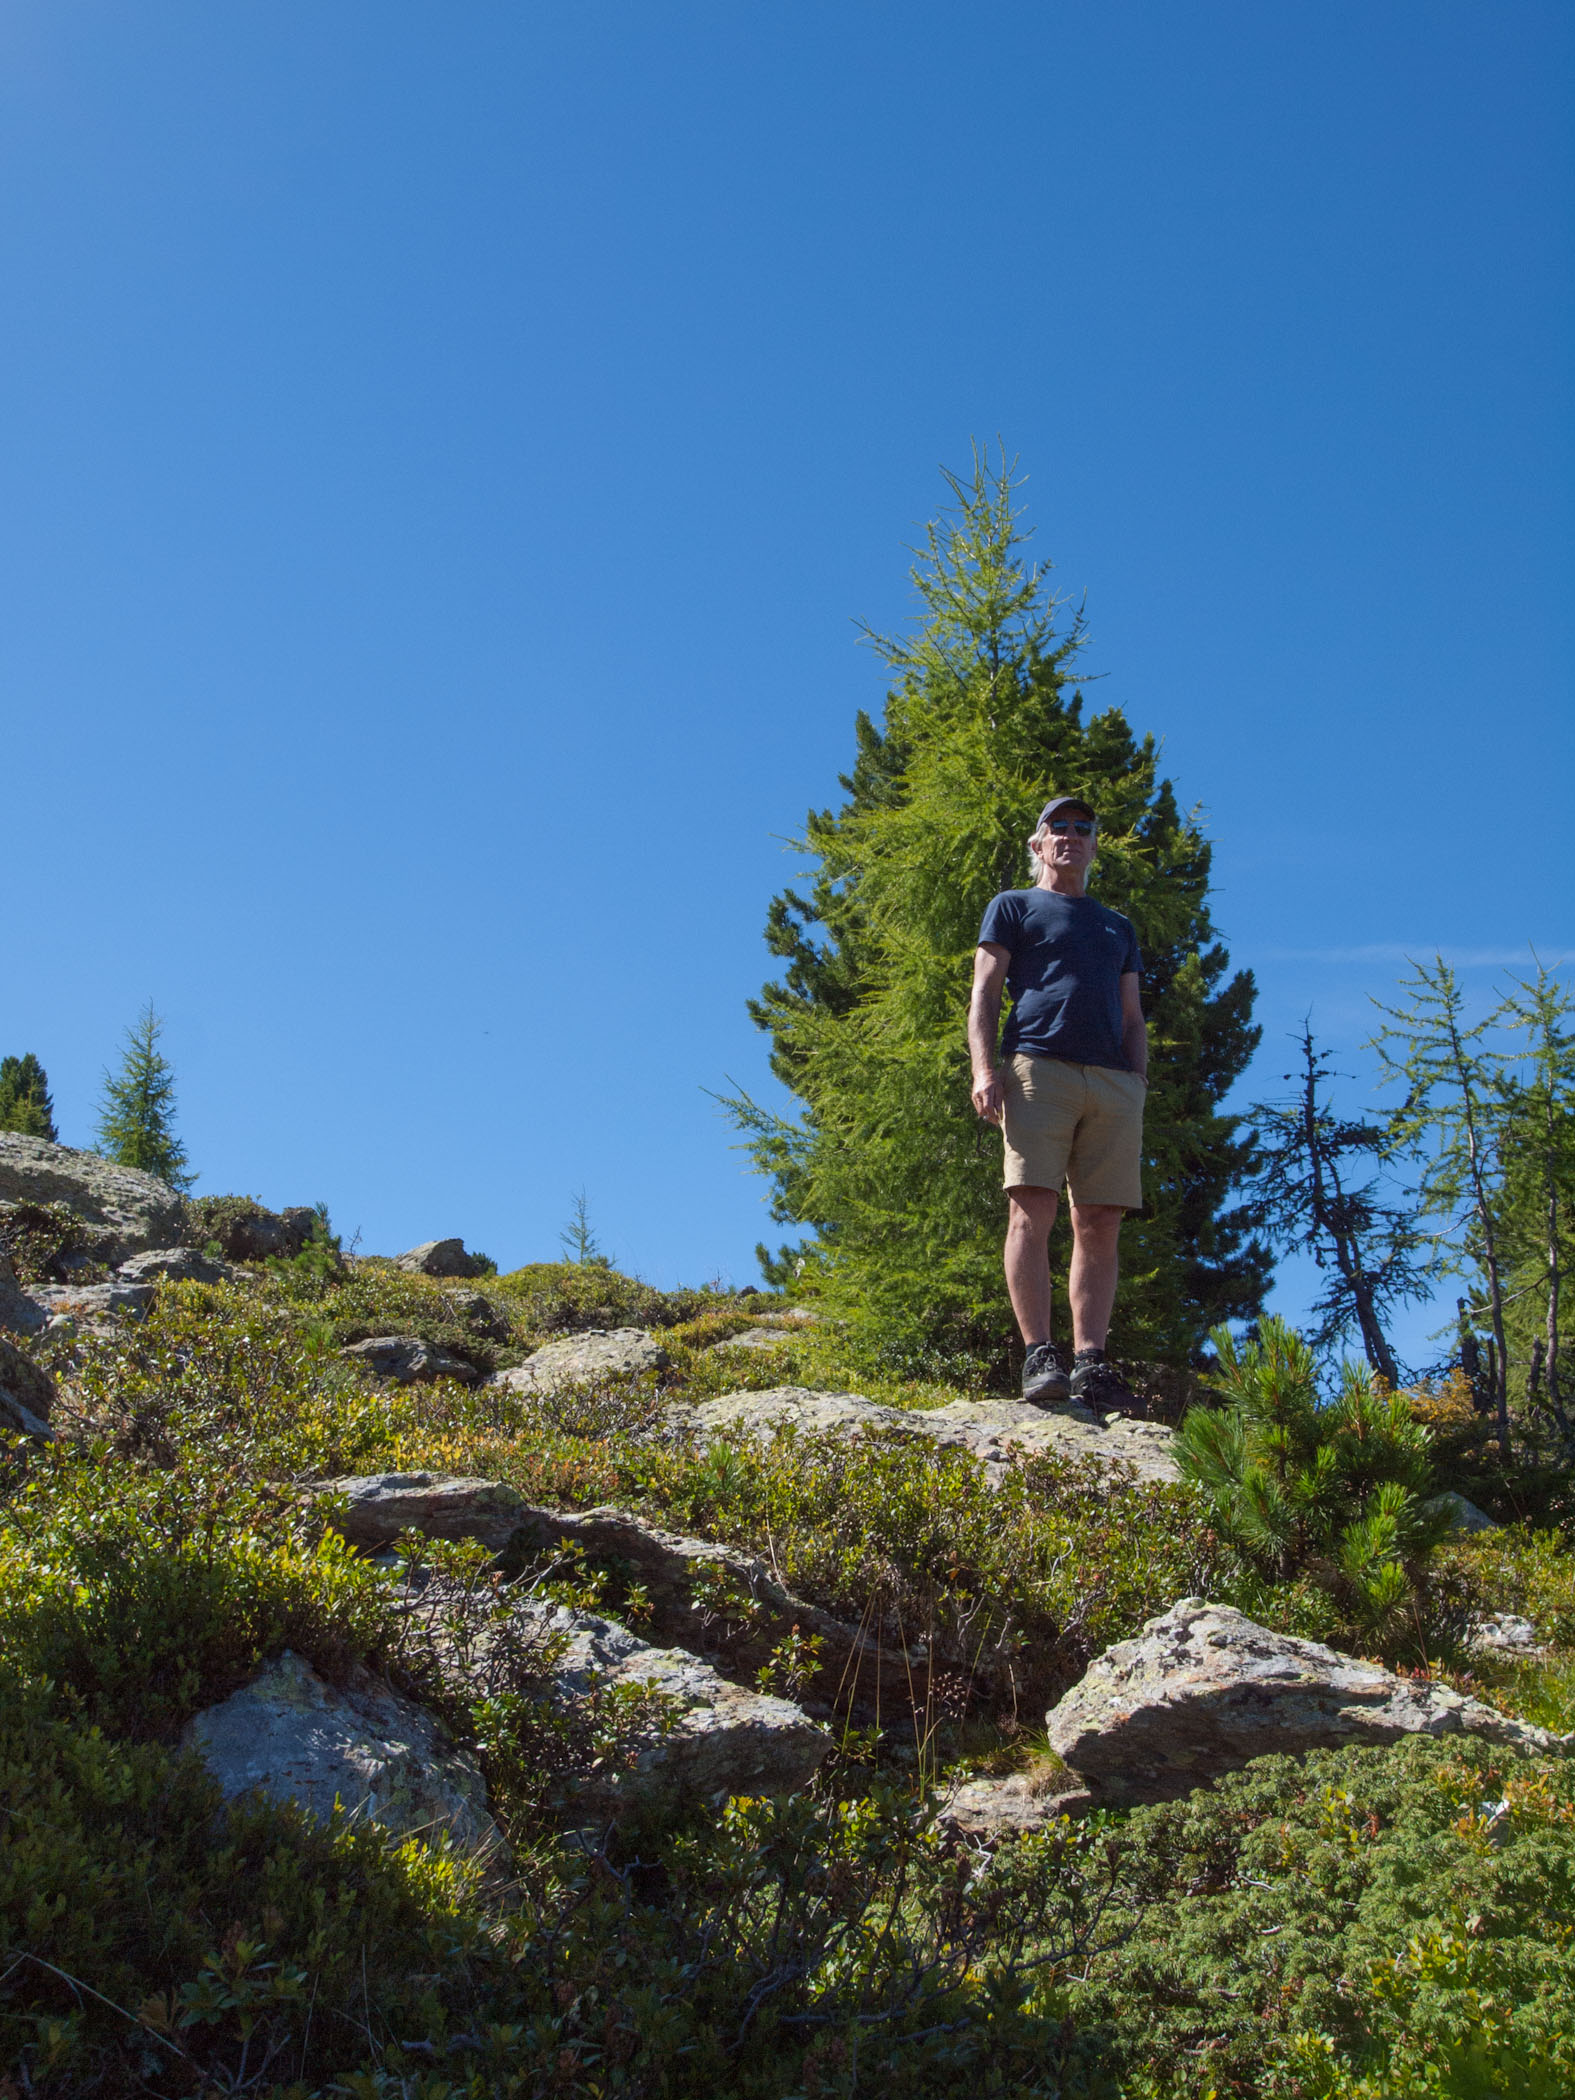 Hiking in the Kreischberg - Murau region